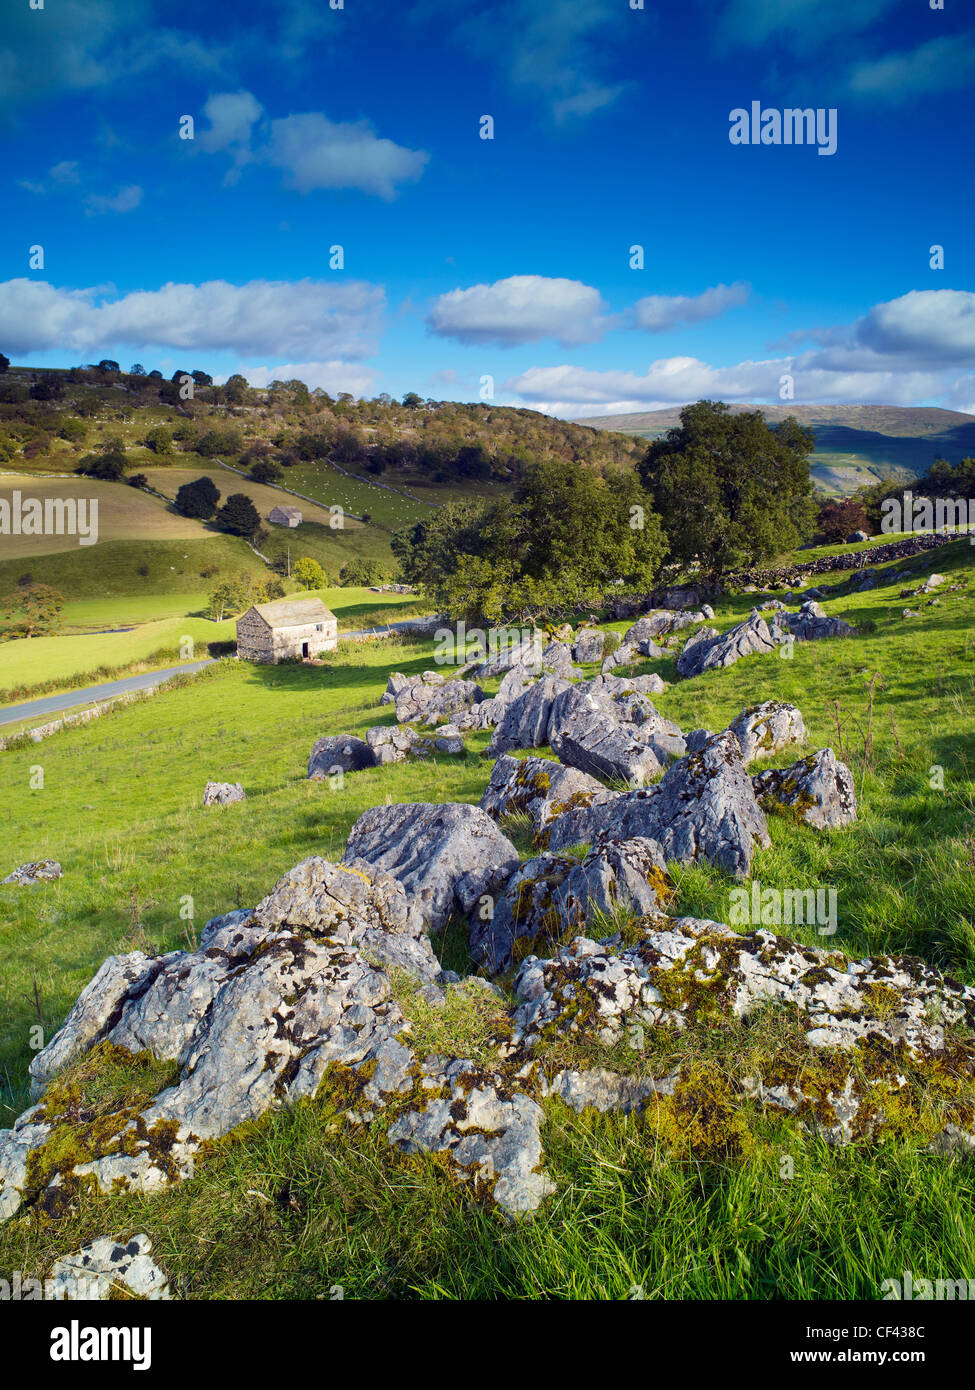 View over the rugged slopes of Wharfedale in the Yorkshire Dales. - Stock Image